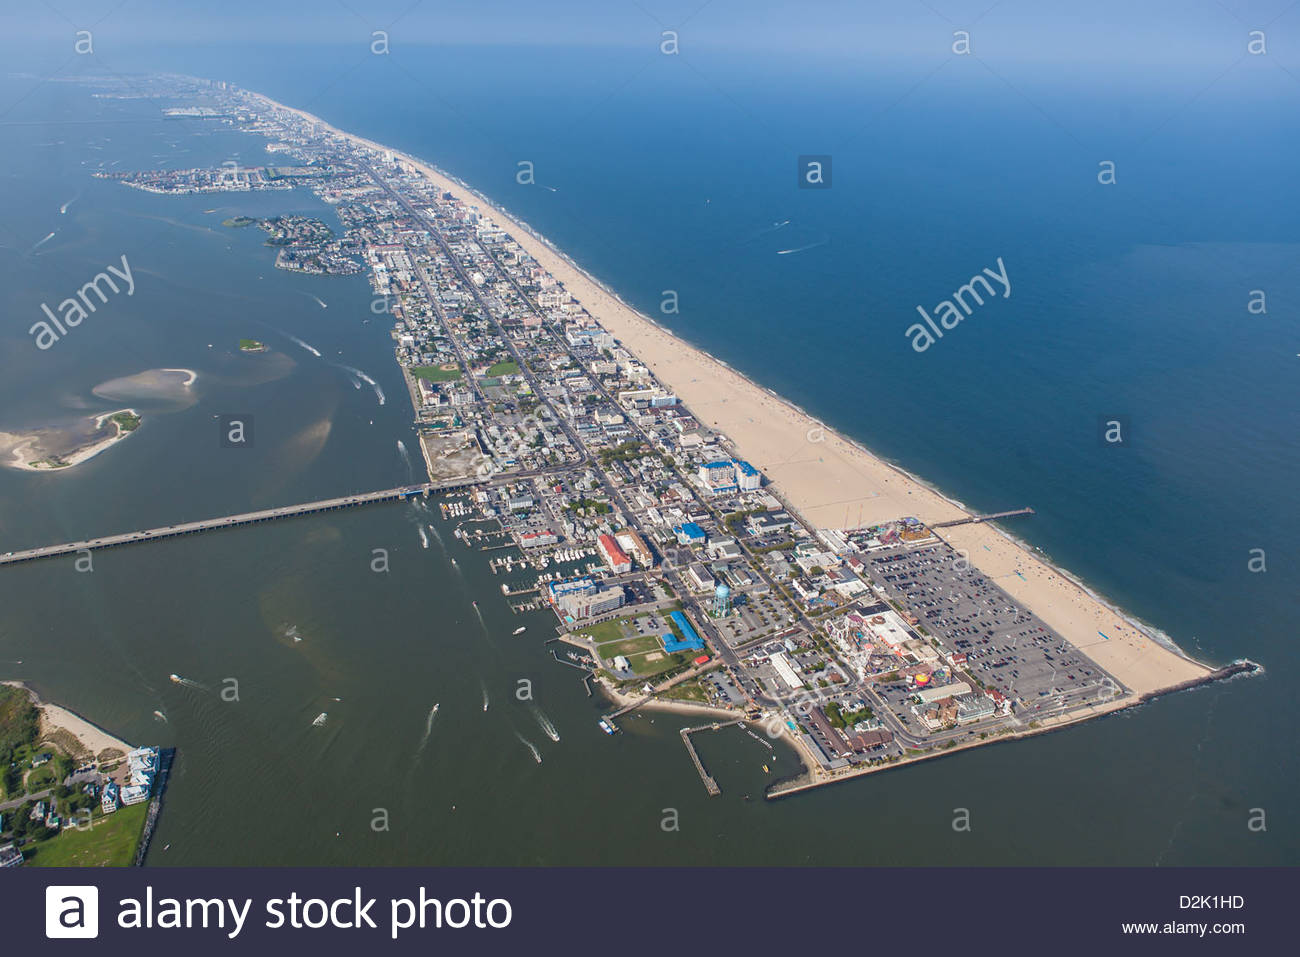 Is Ocean City Md An Island Or Peninsula